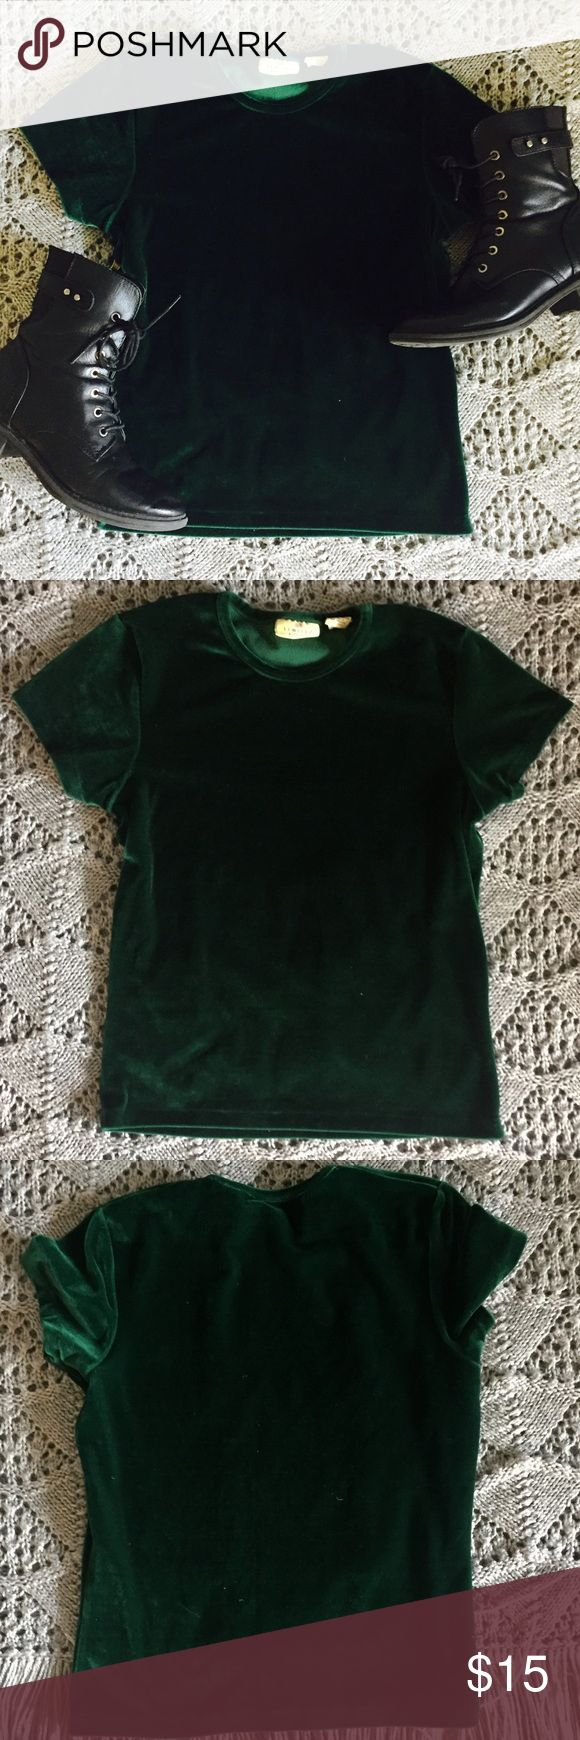 Emerald Green Velvet Tee!! Super cool emerald green velvet tee. No flaws. I think it's from the 90's but don't quote me on that! It's one of those items that is admittedly hard to capture its true essence on camera but like it's just SO COOL! Bundle for a discount! Reasonable offers always accepted! ✌️🎶😎 Limited America Tops Tees - Short Sleeve